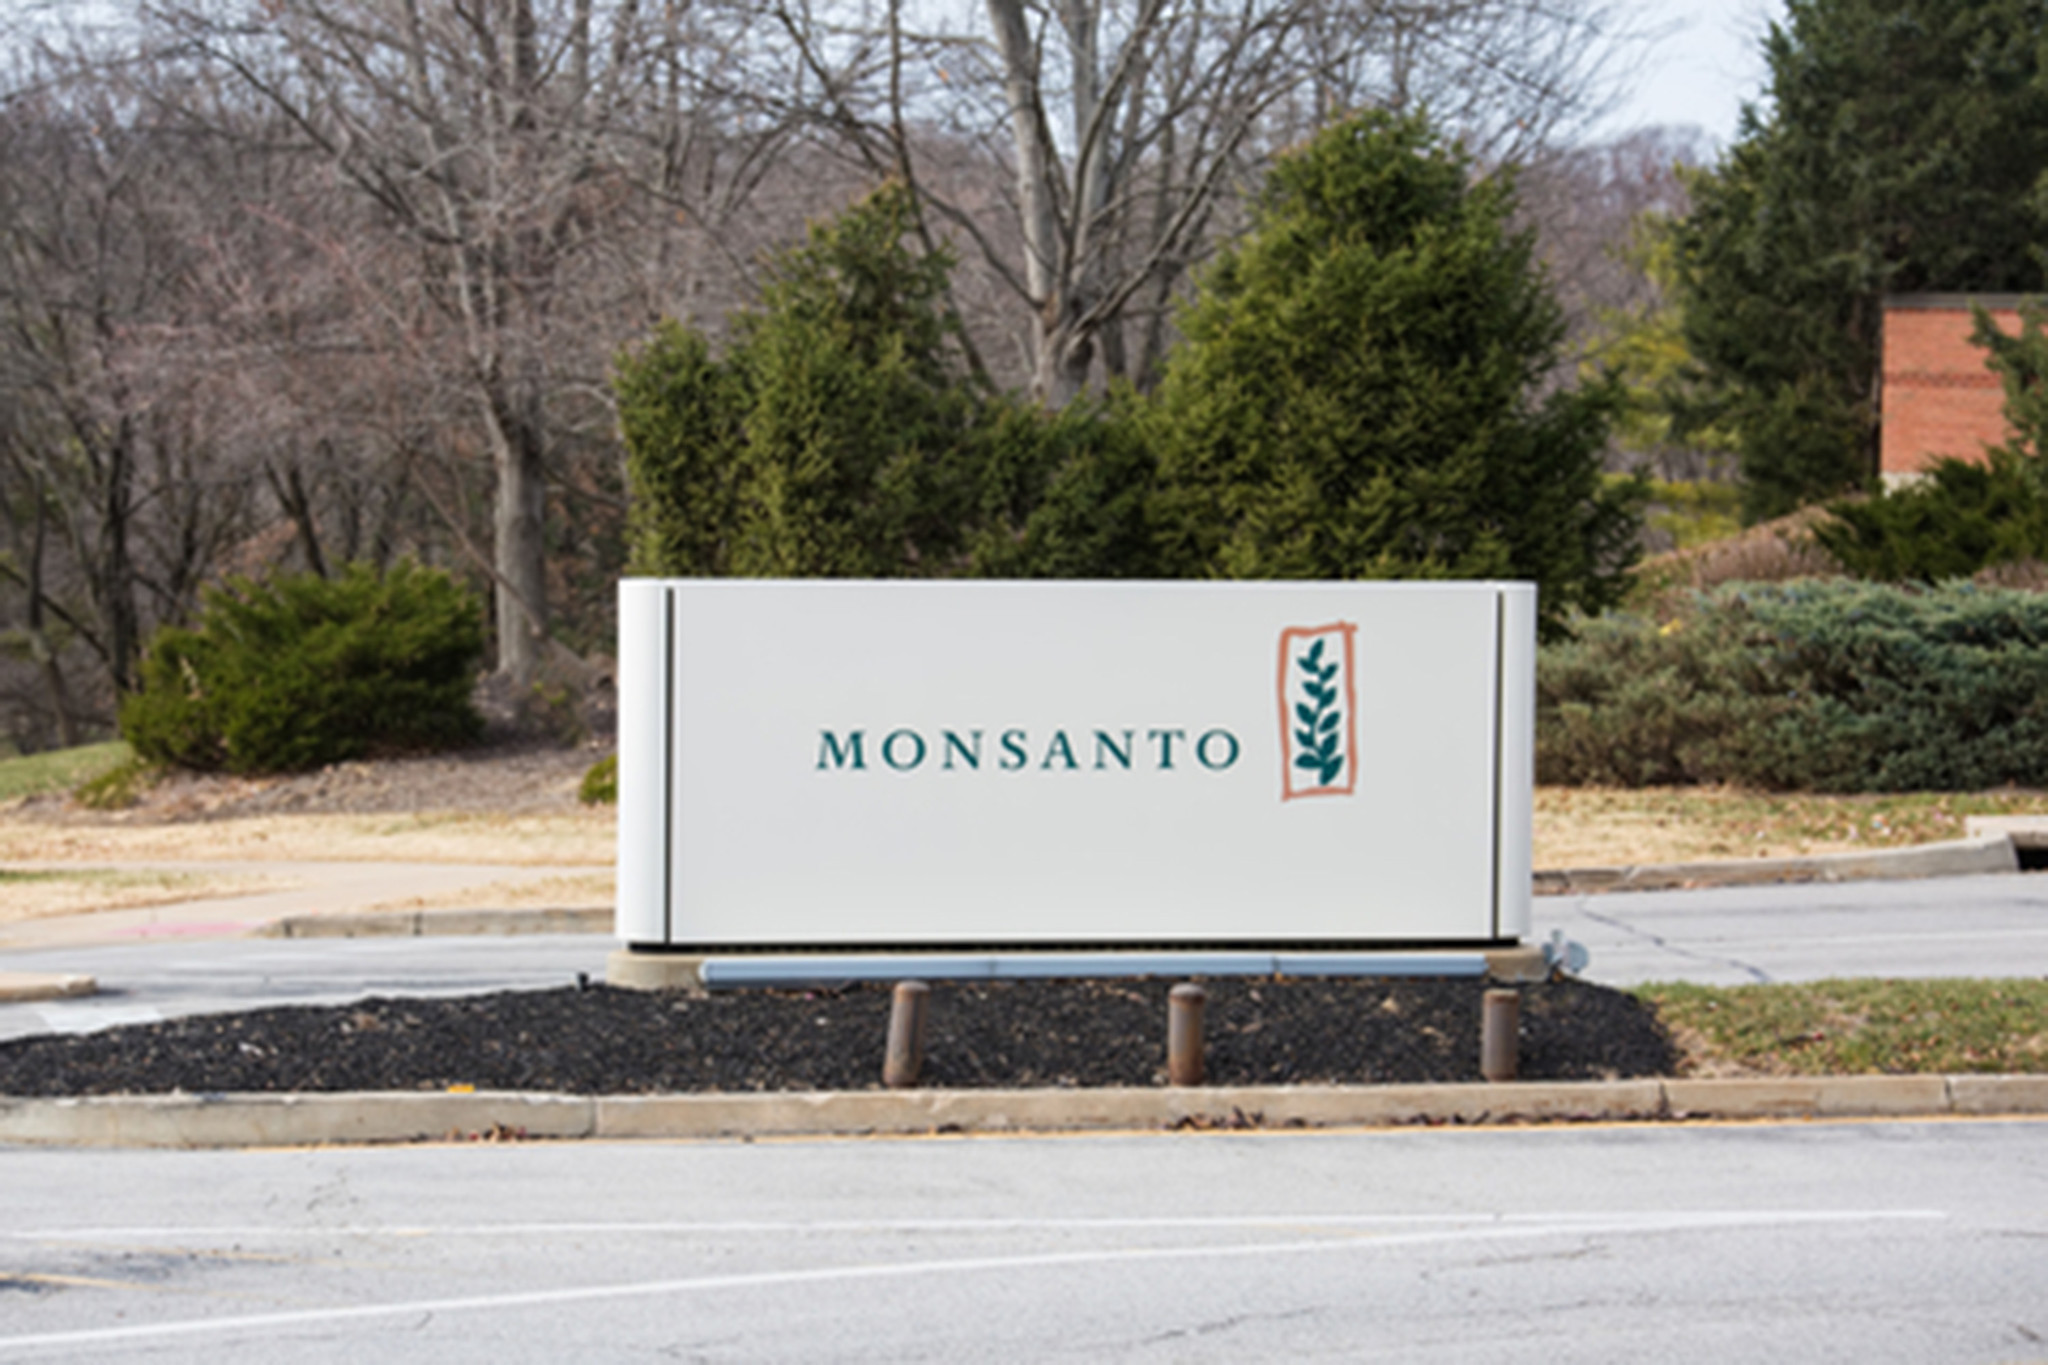 monsanto company essay Free essay: parker gross mktg 495 case #3 - monsanto i: situation analysis monsanto is a company that some people may not be explicitly familiar with on a.